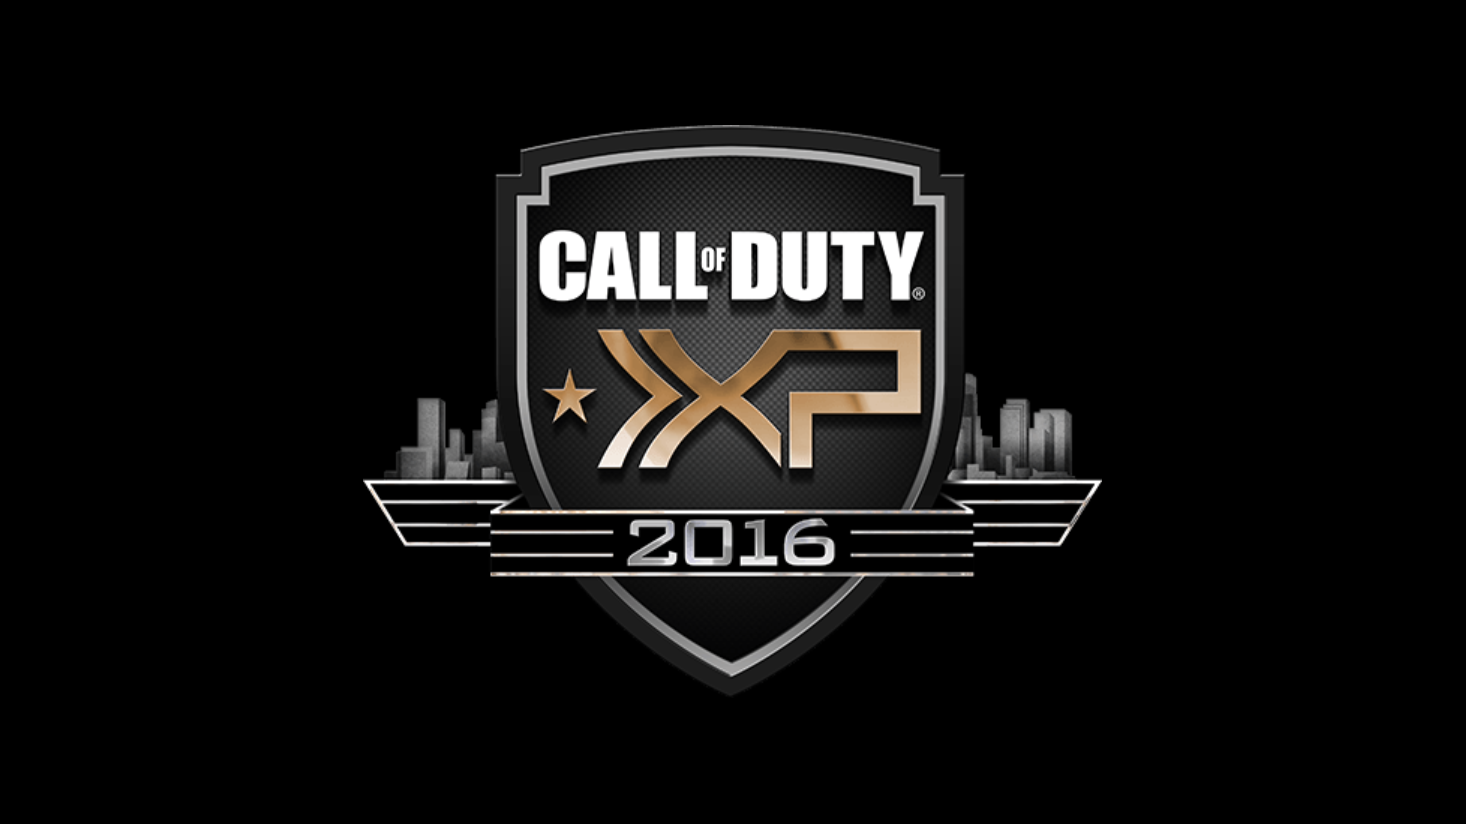 Call of Duty XP Live